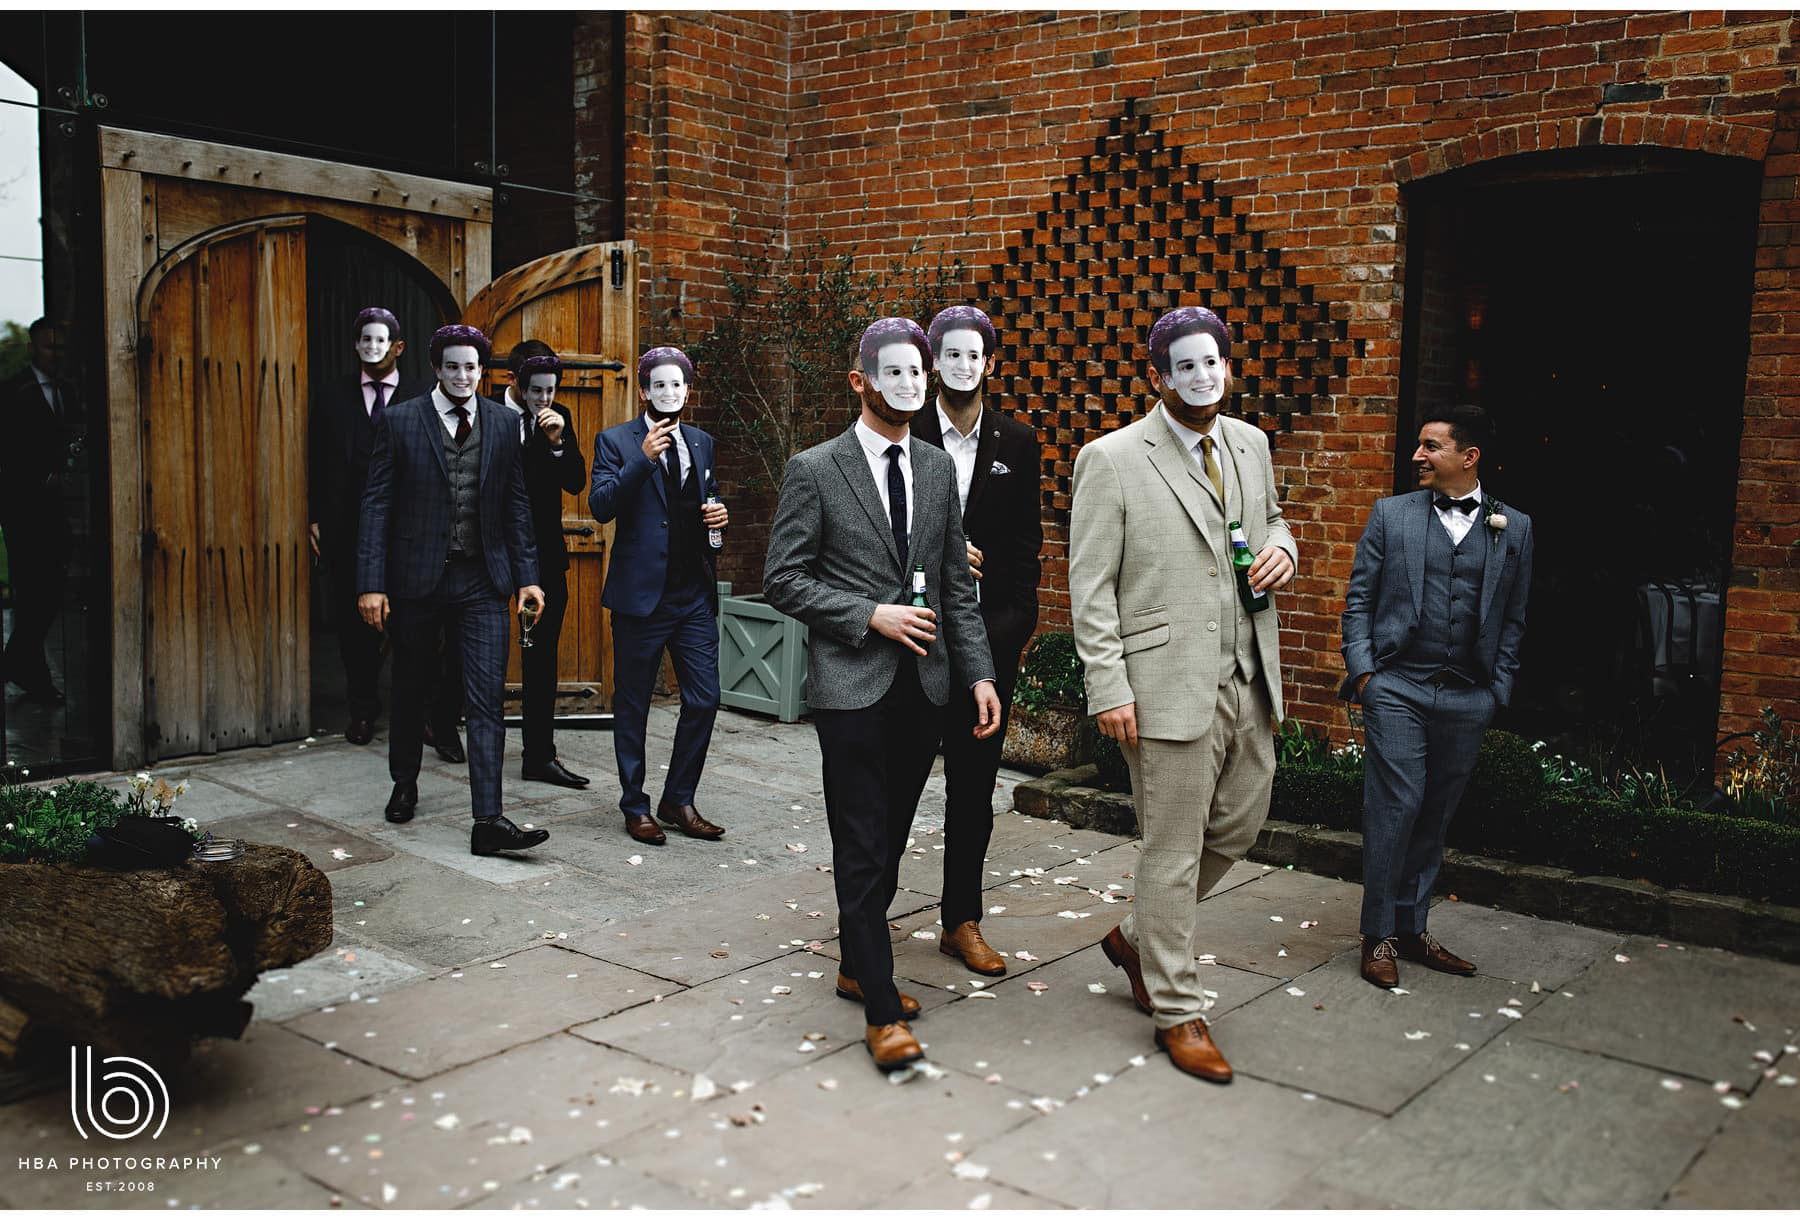 all the groom's mates wearing the groom's face as masks